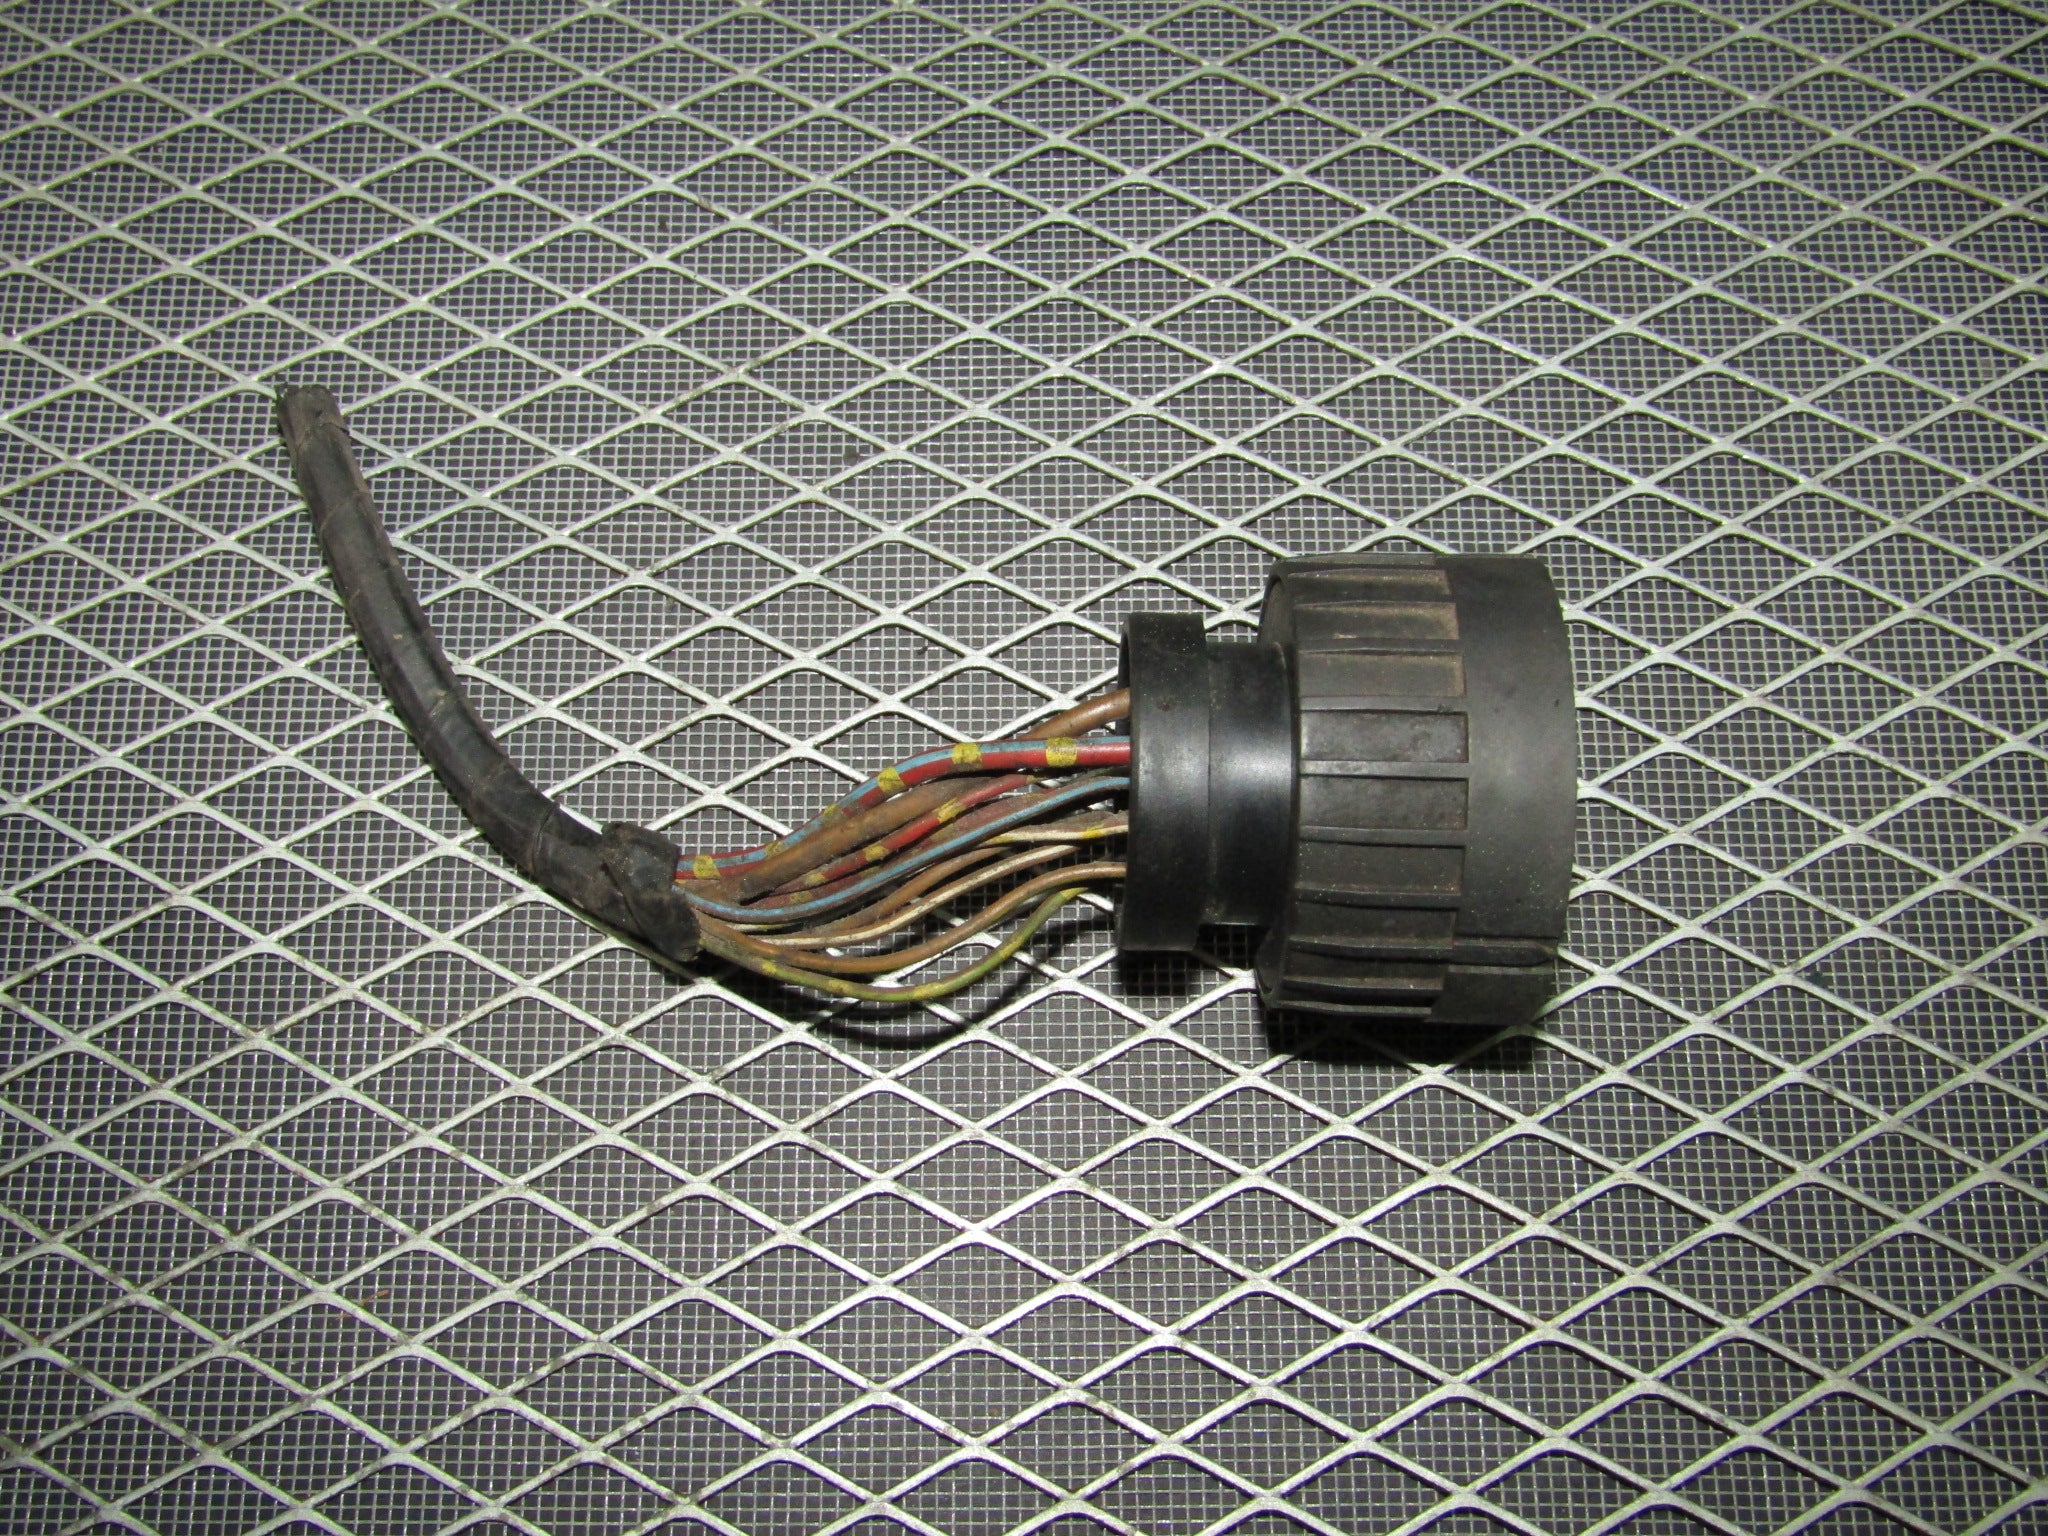 92 93 94 95 BMW 325 OEM ABS Motor Actuator Pigtail Harness